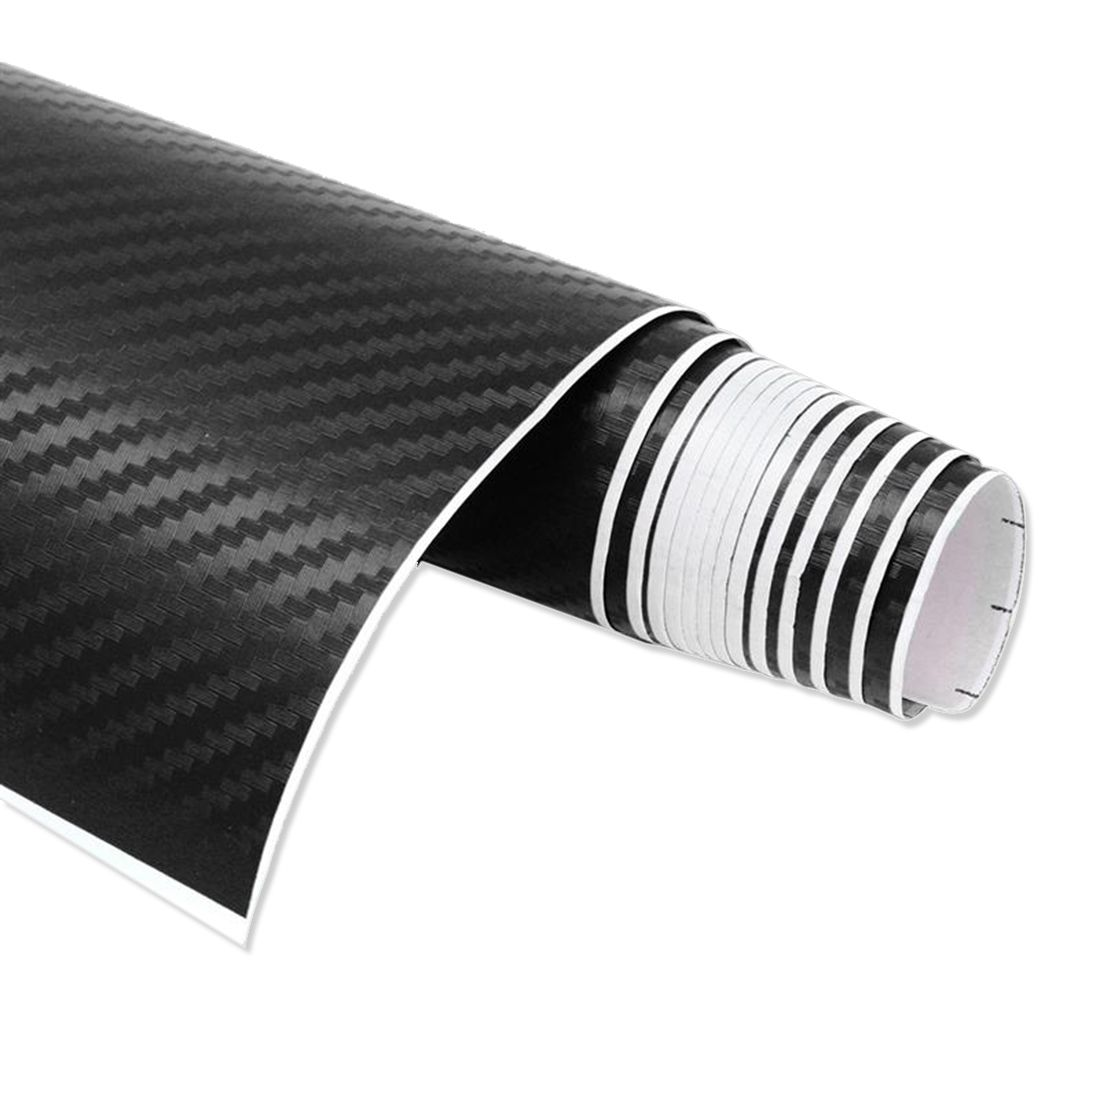 Car Vehicle DIY 3D Carbon Fiber Vinyl Wrap Roll Film Sticker Decal 70x10cm Black